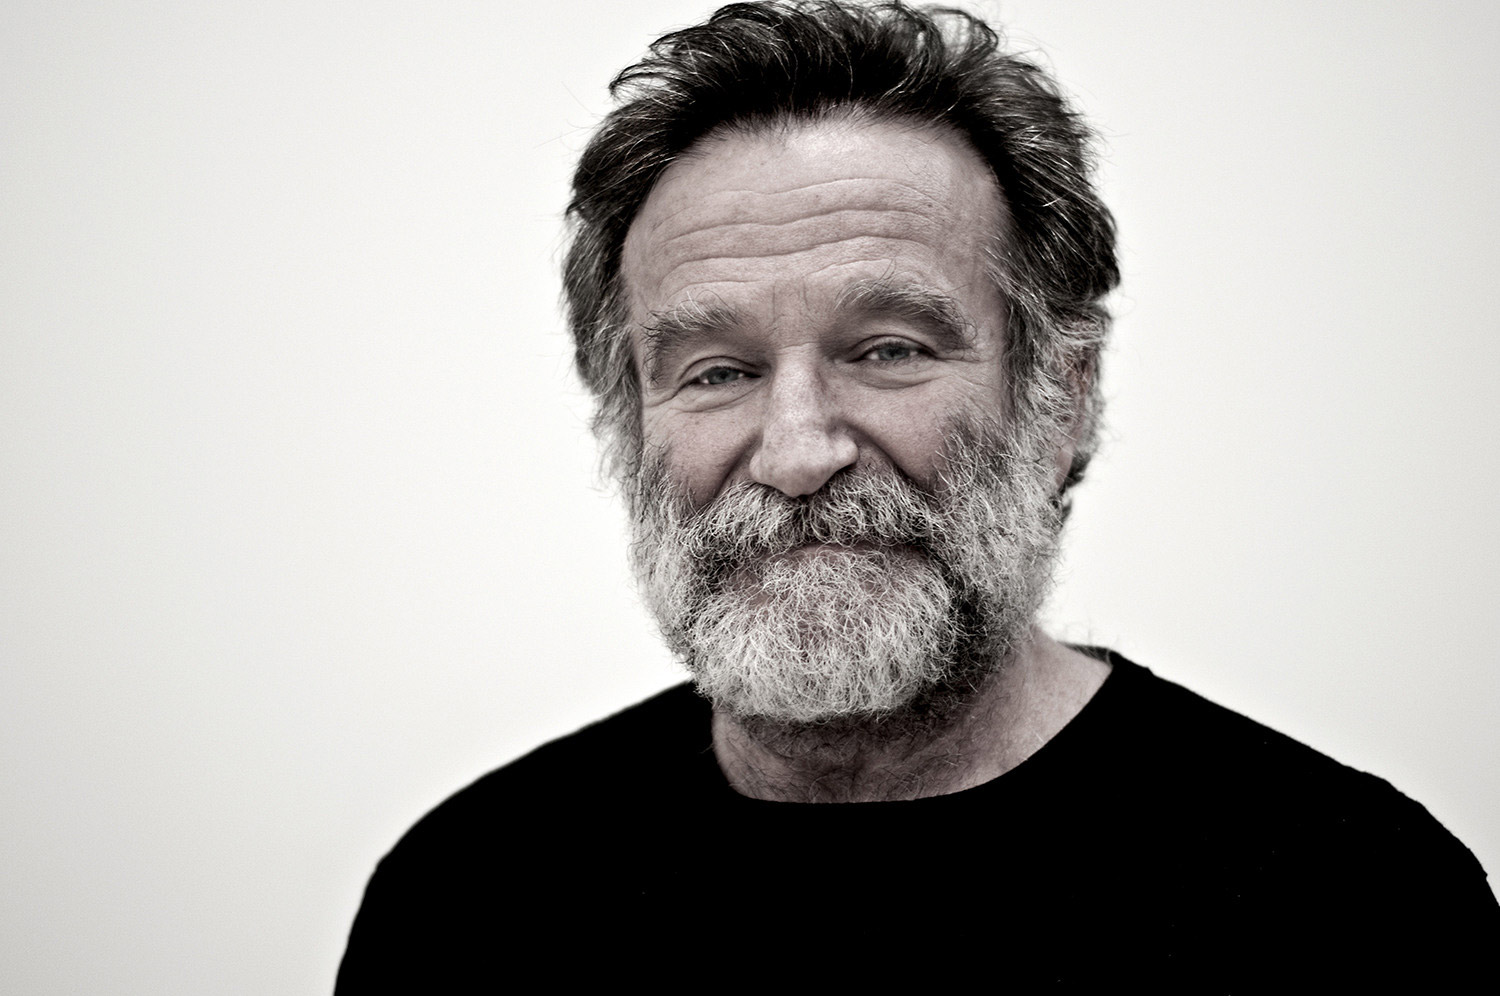 Robin Williams, © George Seminara, New York , NY, United States, Amateur : Celebrities, PDN Faces - Portrait Photography Contest